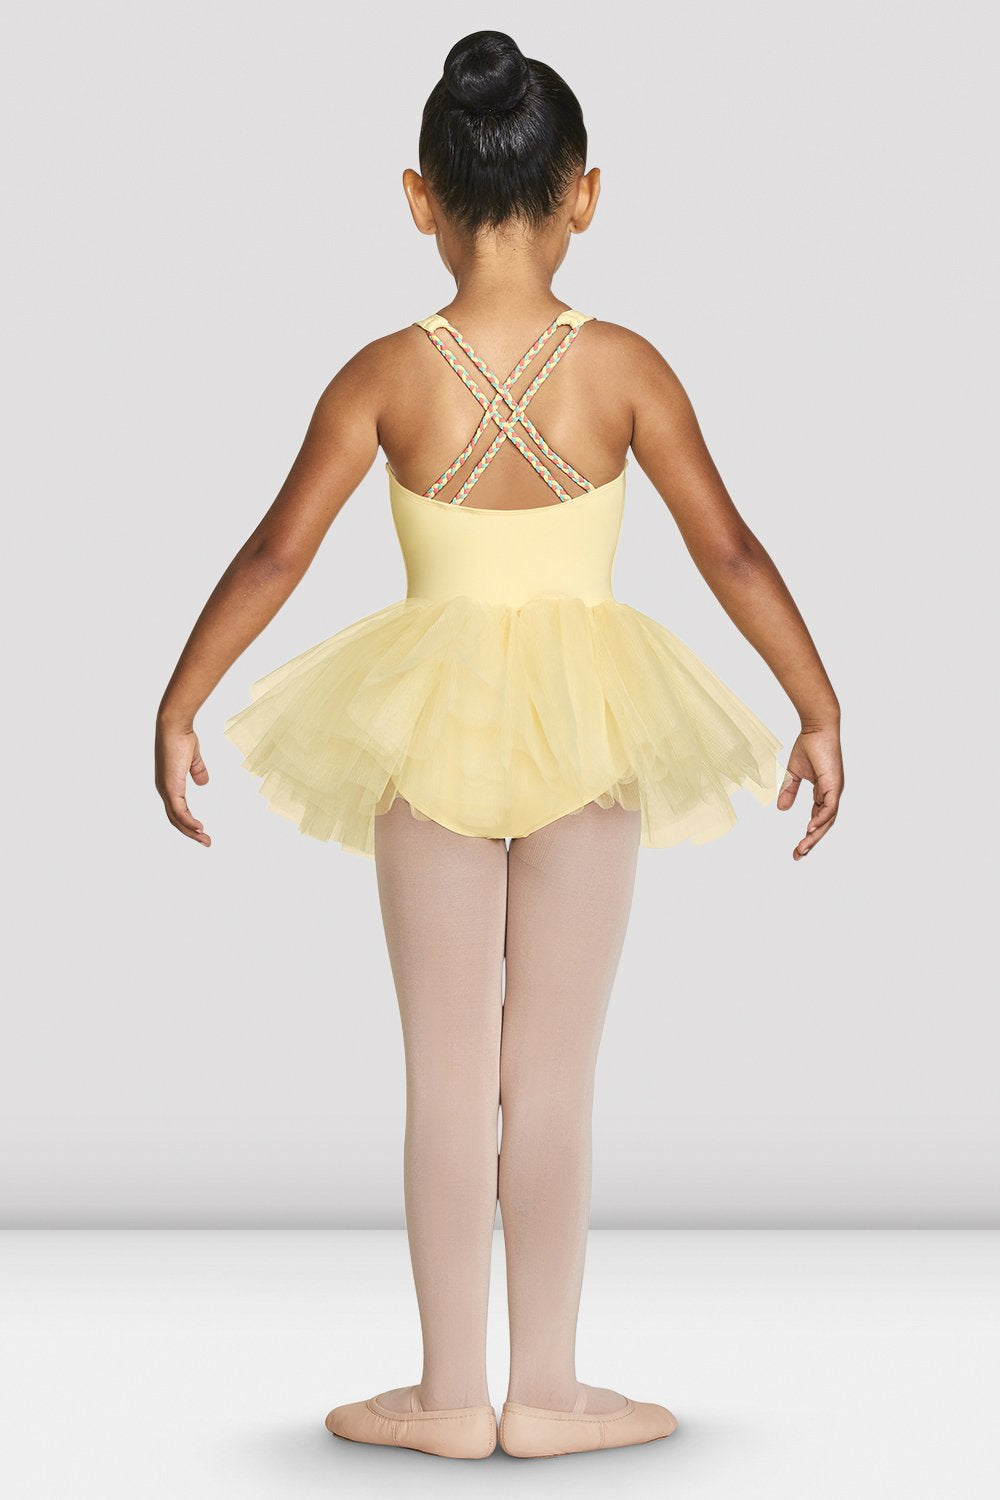 Sunshine Bloch Girls Clara Strap Tank Tutu Leotard on female model feet in first with arms in demi bra facing back